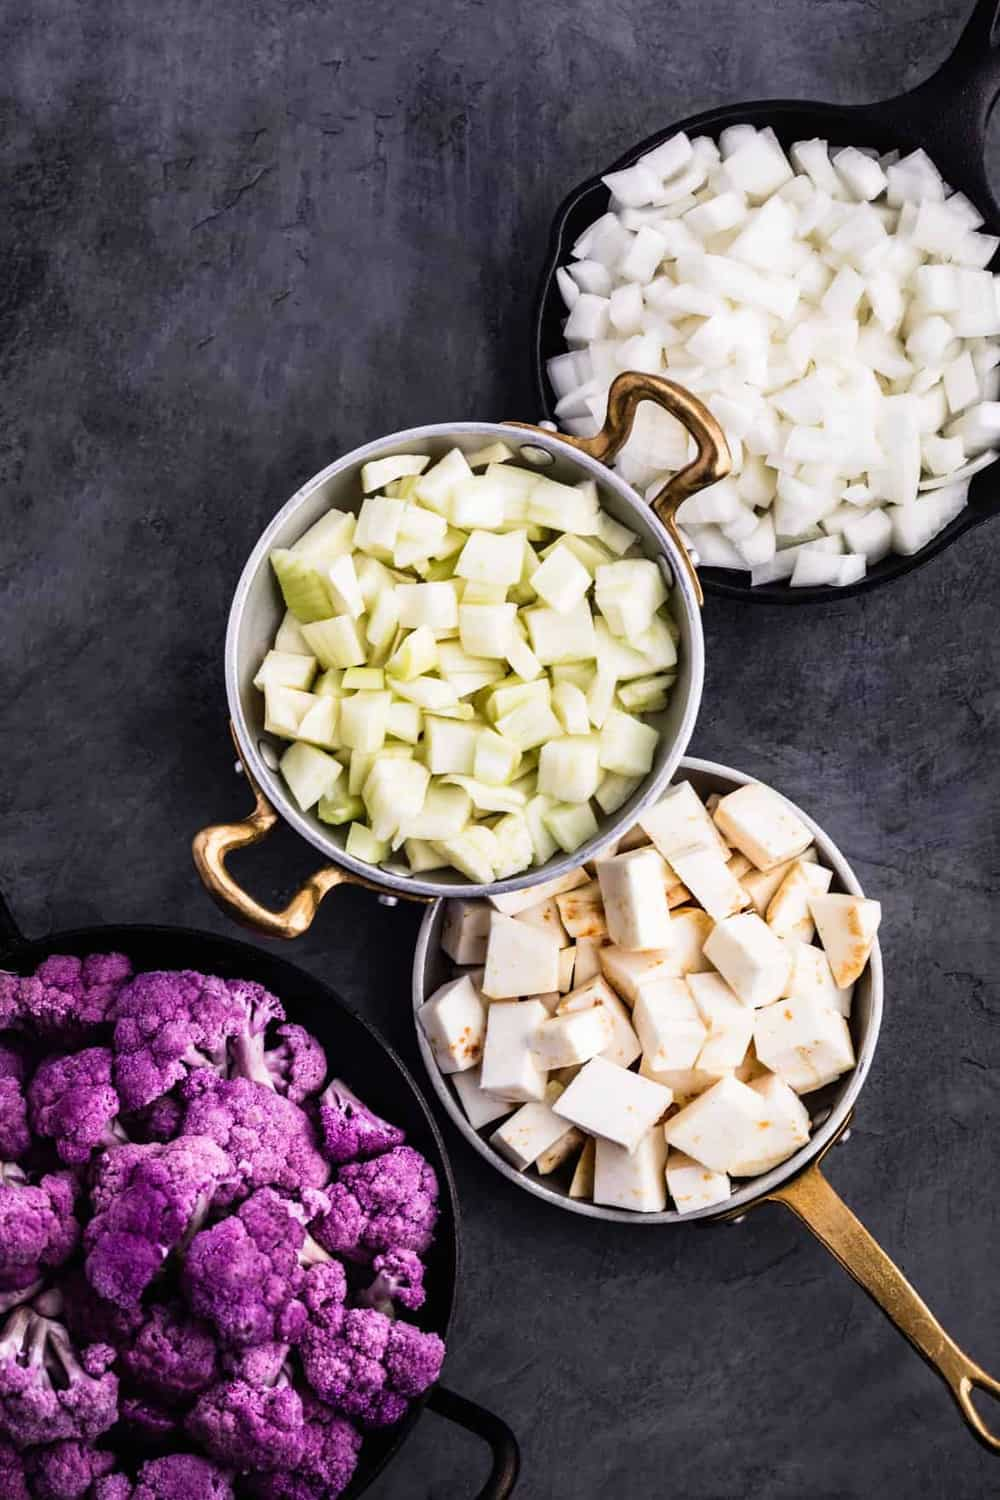 Ingredient prep shot with the cut up cauliflower, onions, celery root and fennel.